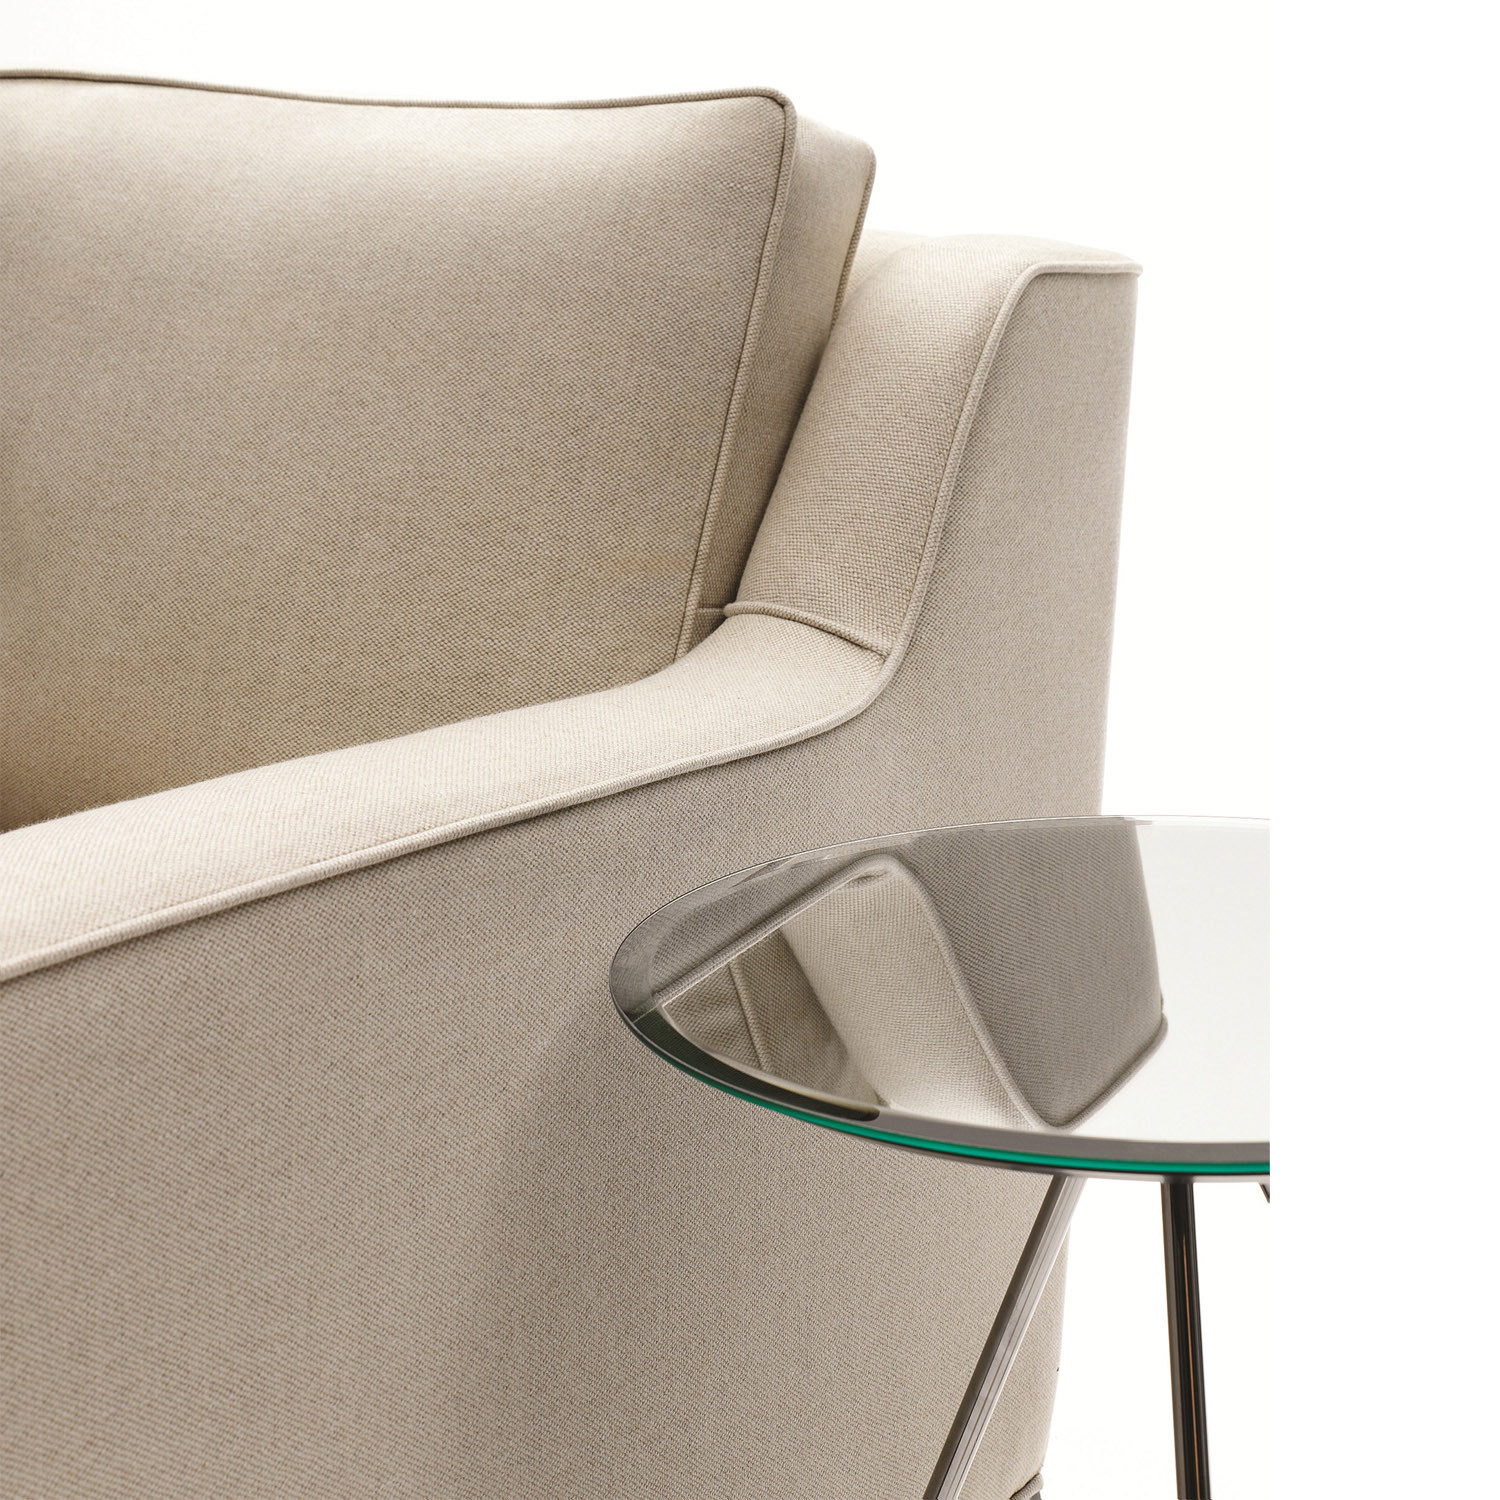 Lysander Sofa and Armchair from Lyndon Design